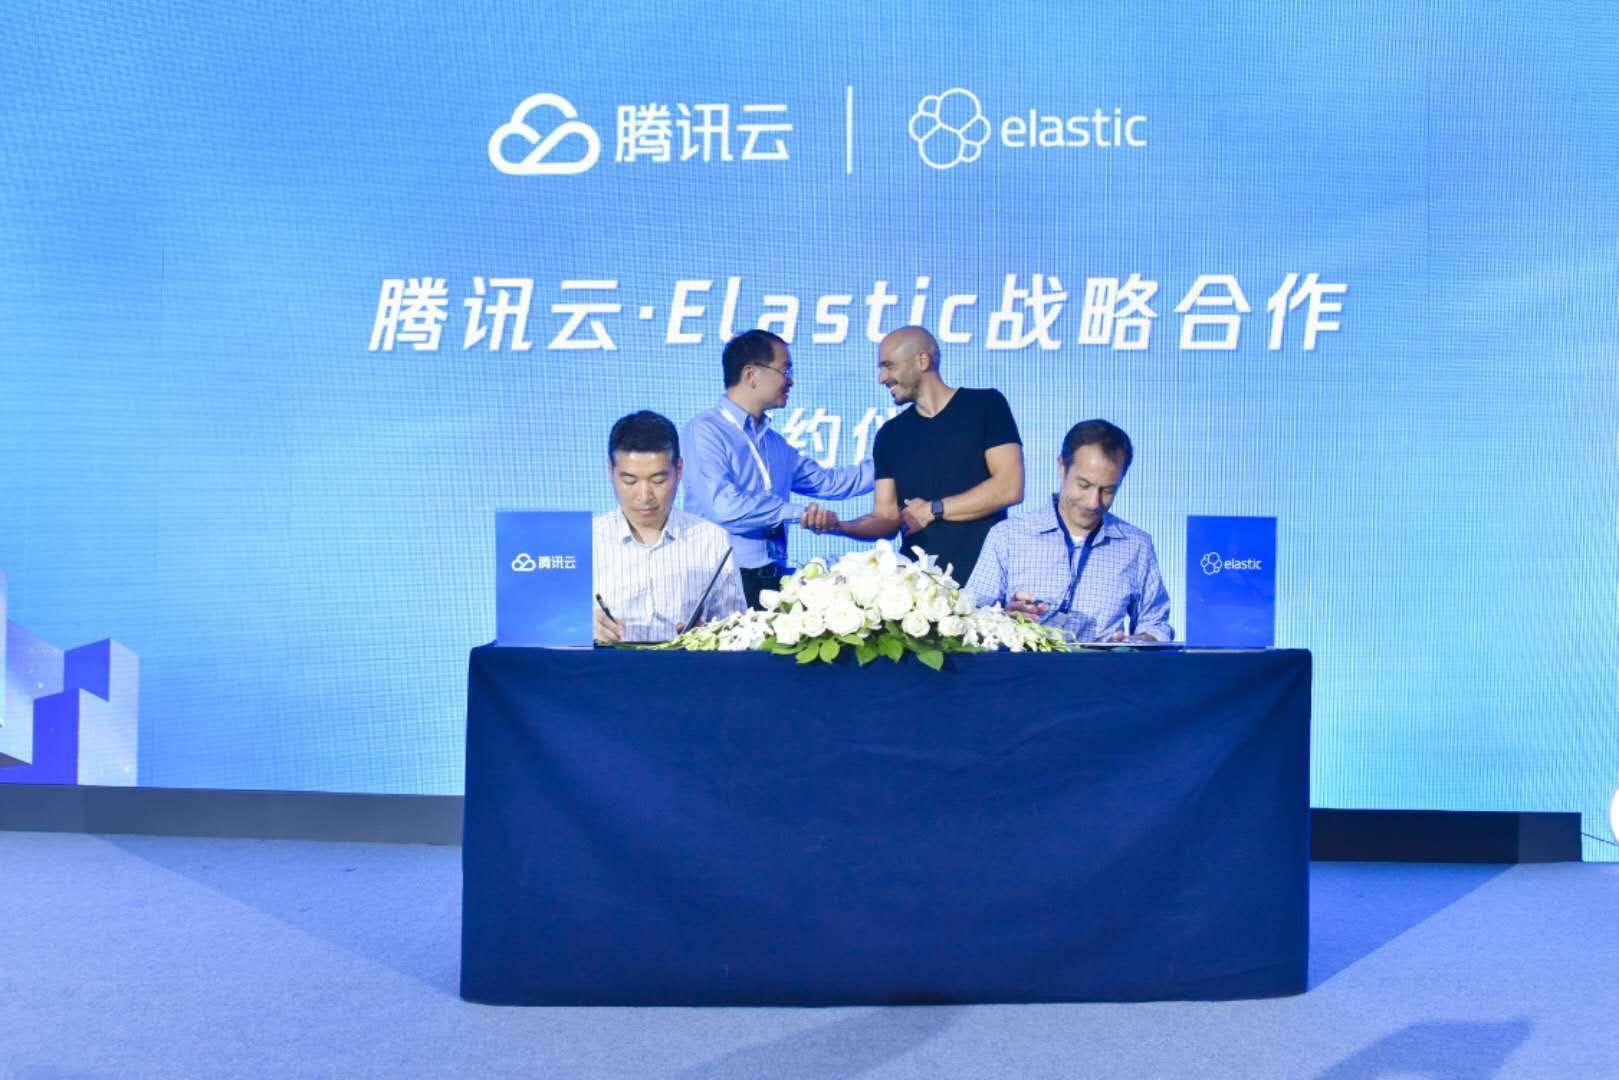 tencent signing photo